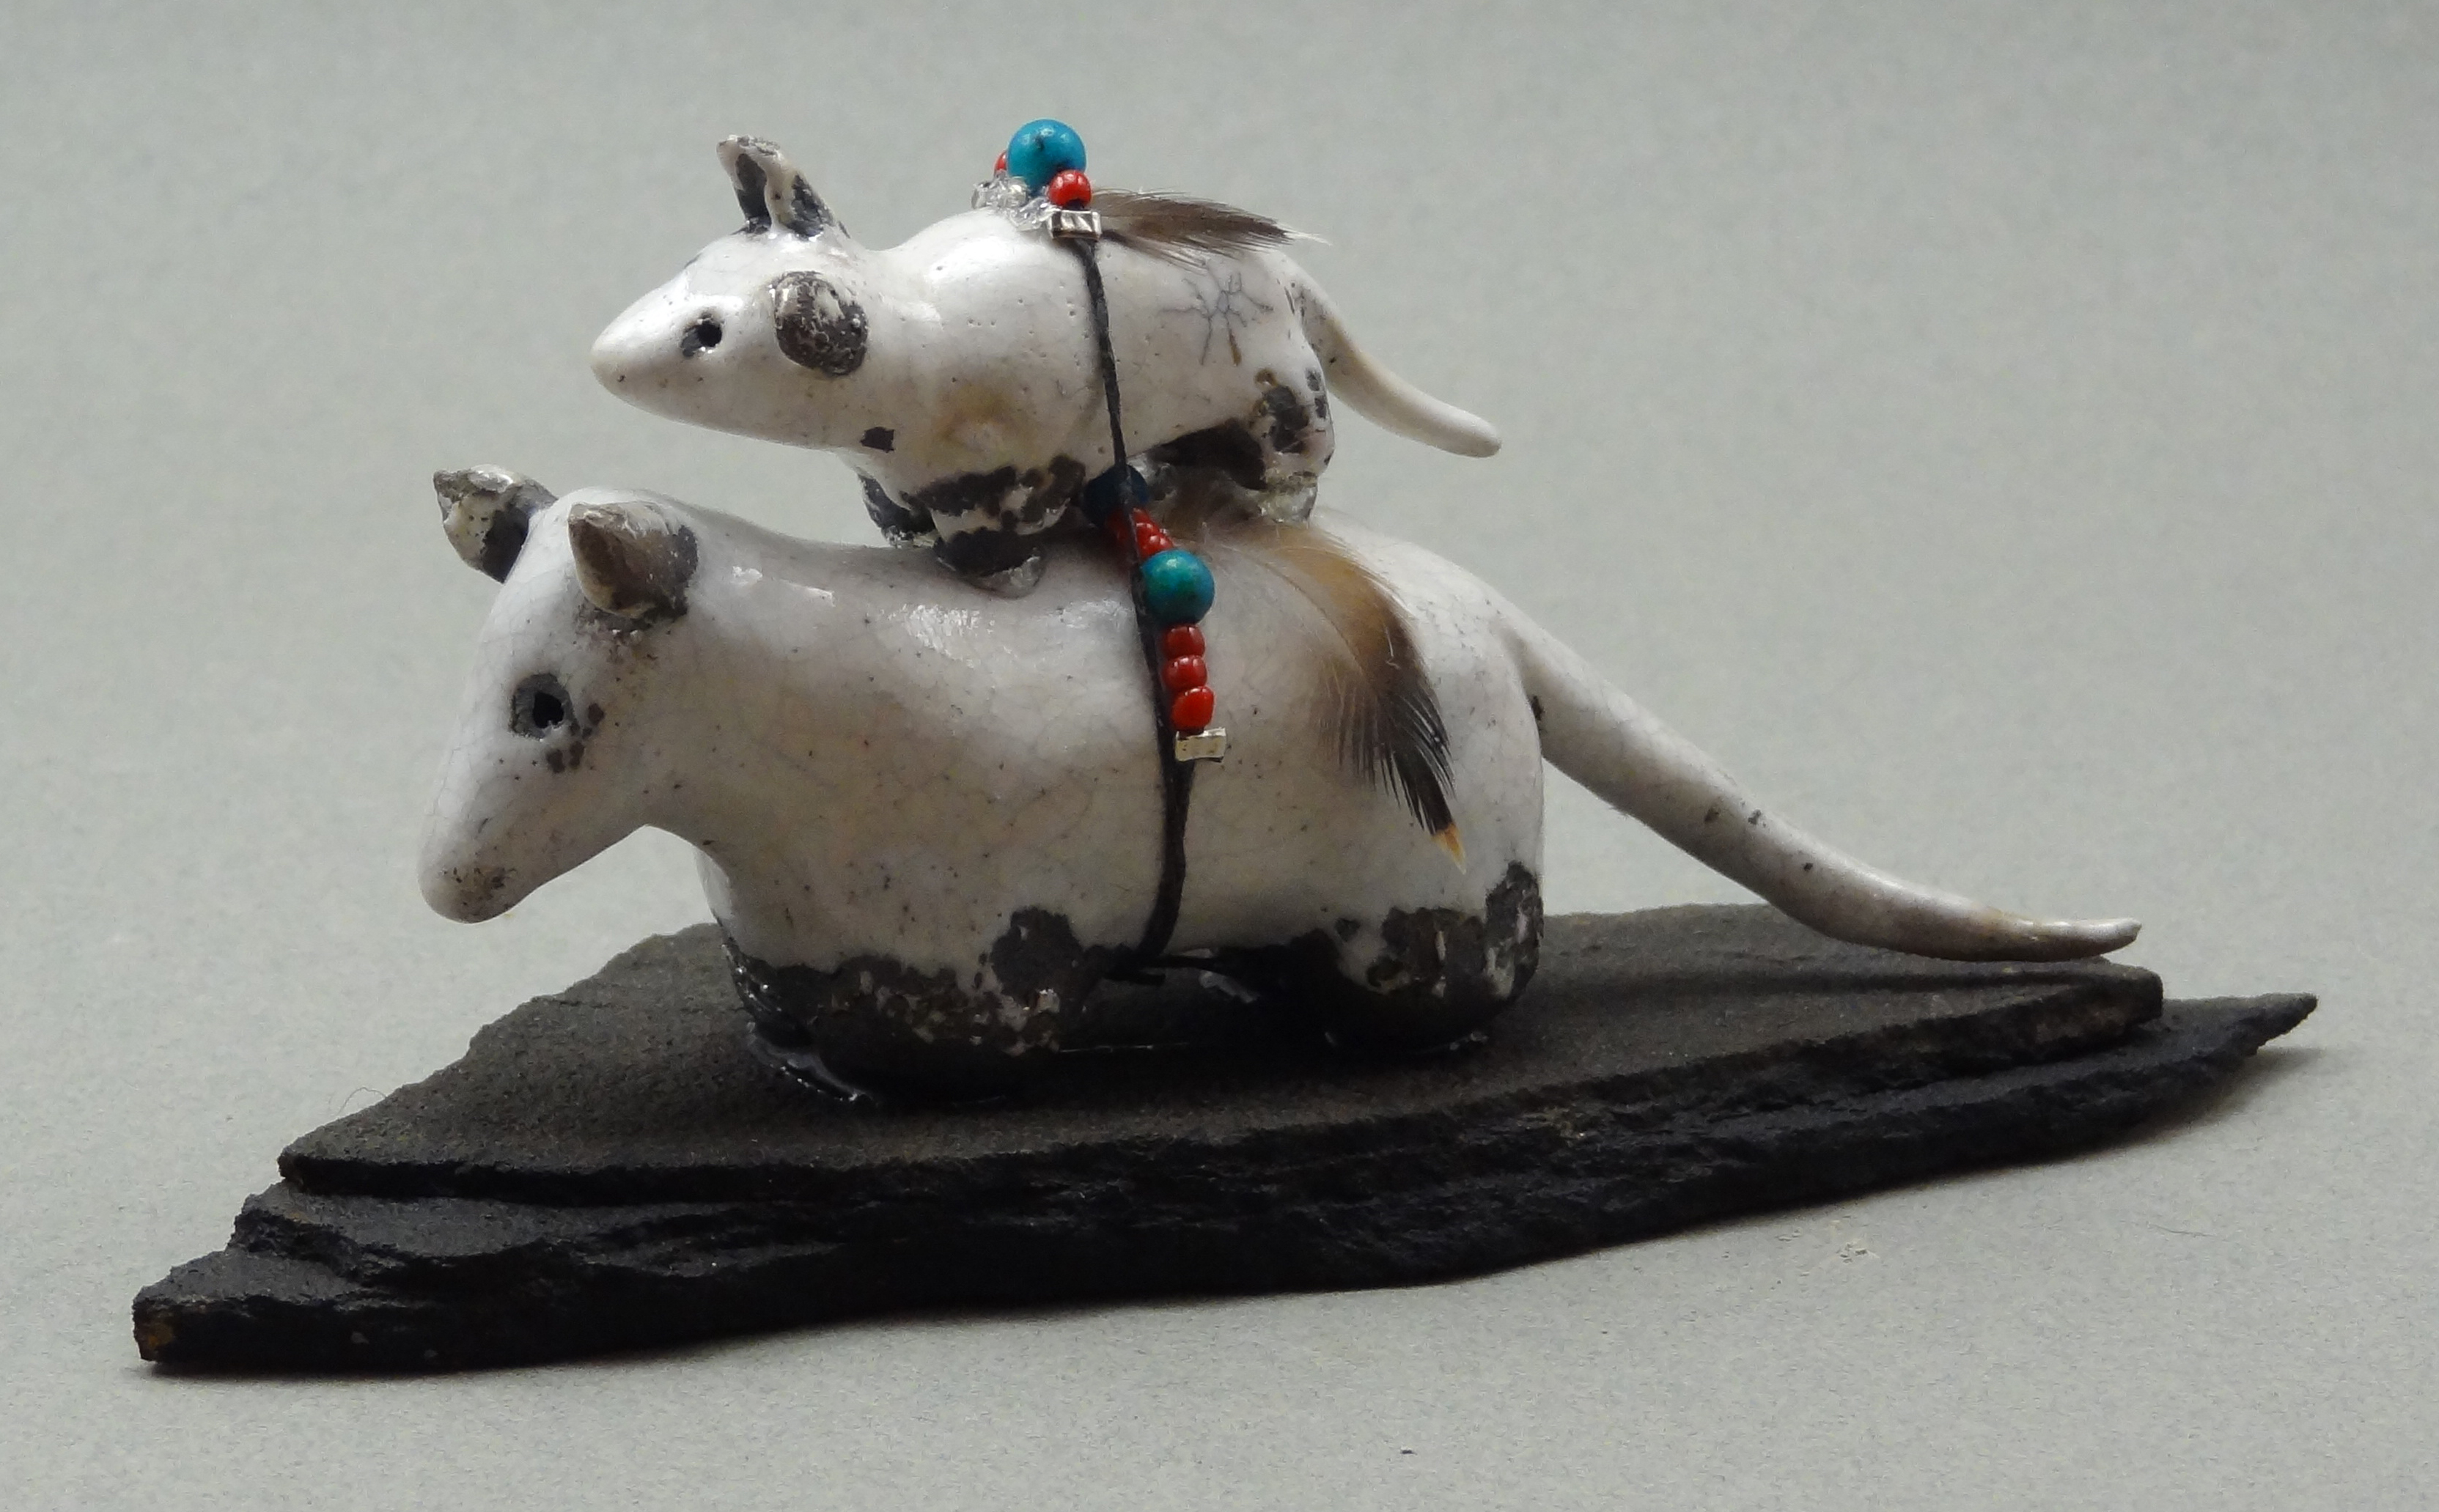 Possum and baby, White Crackle glaze, raku fired, 4 x 2 x 1 inch, mounted on flagstone